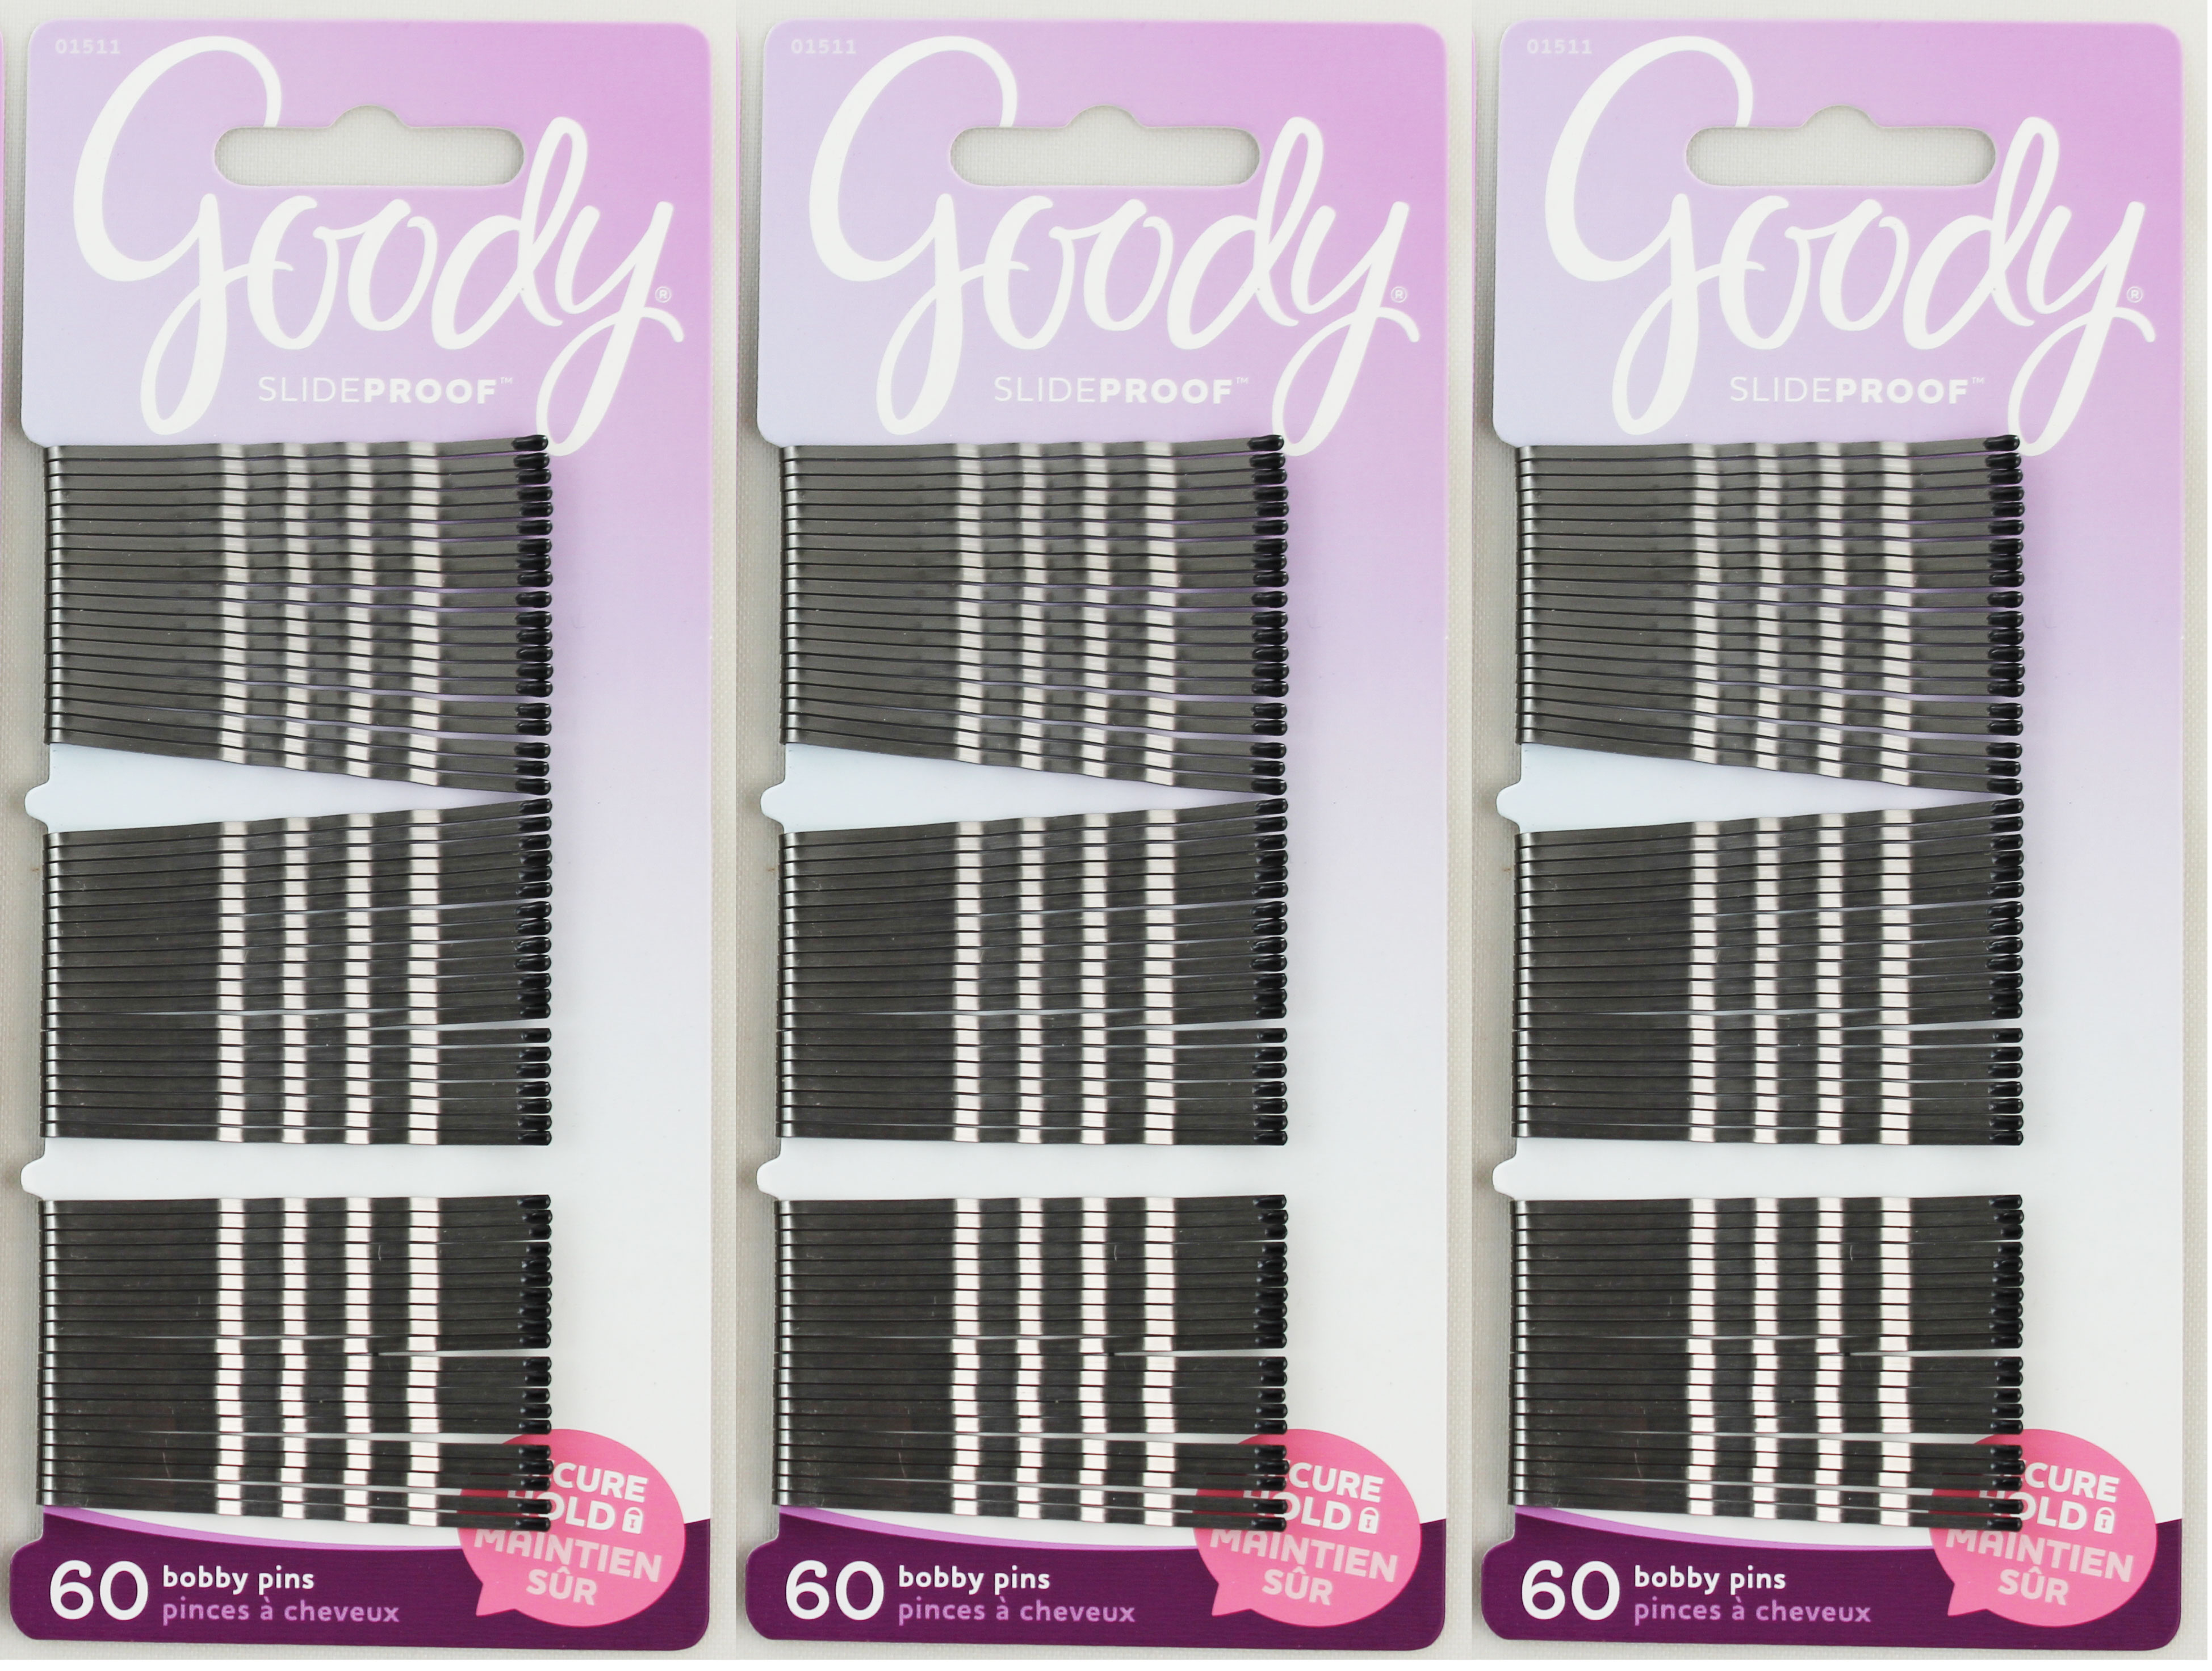 Goody Bobby Pins Secure Hold Grey 60ct